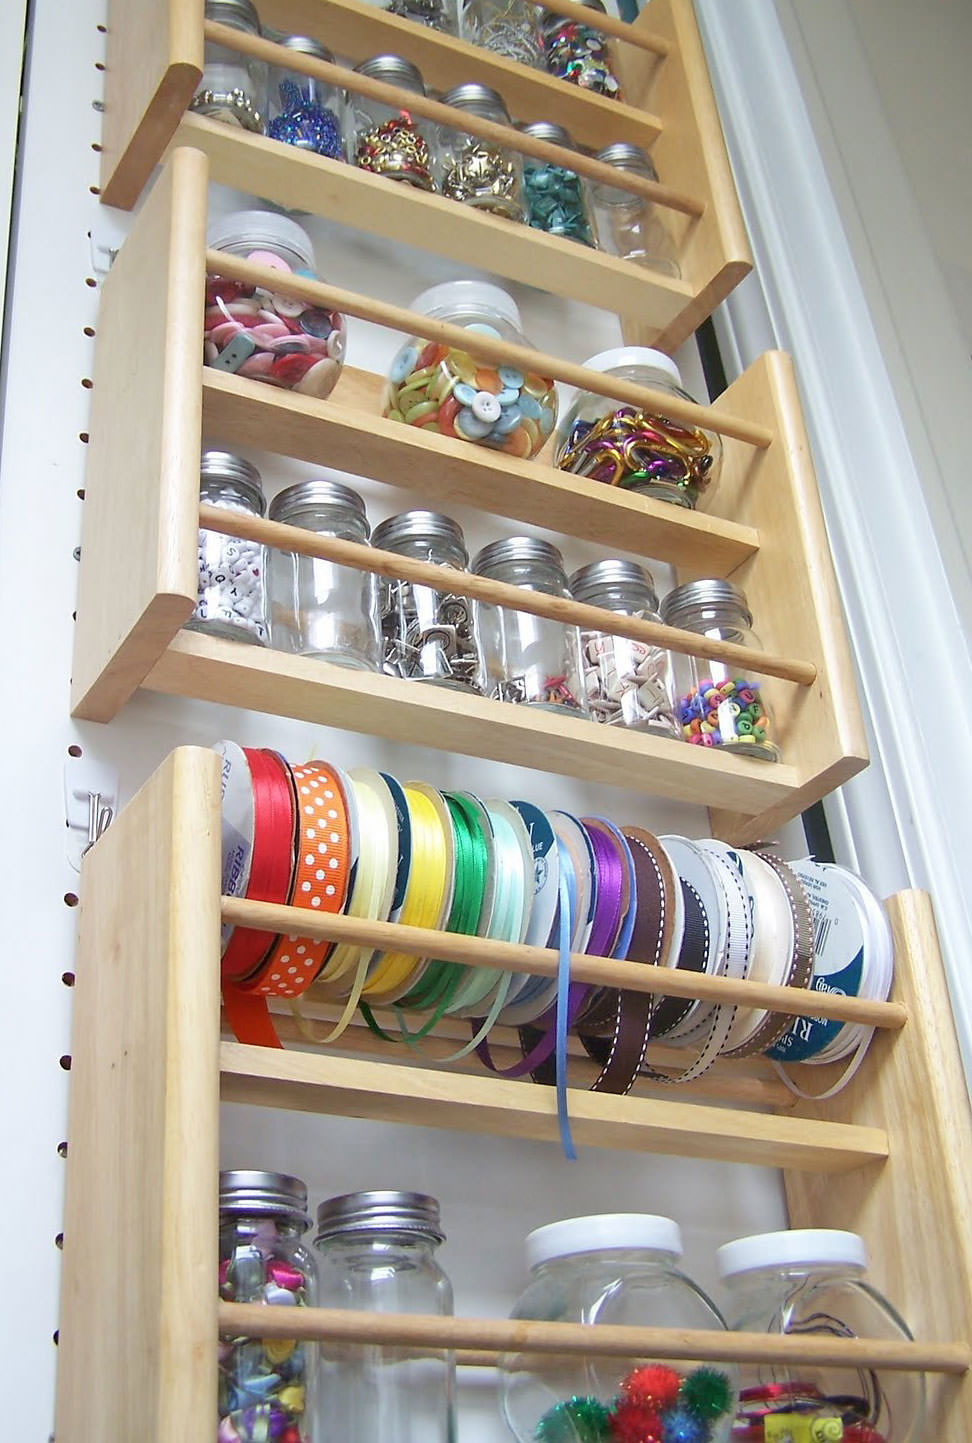 DIY-Craft-Room-Ideas-Projects-1000-1.jpg